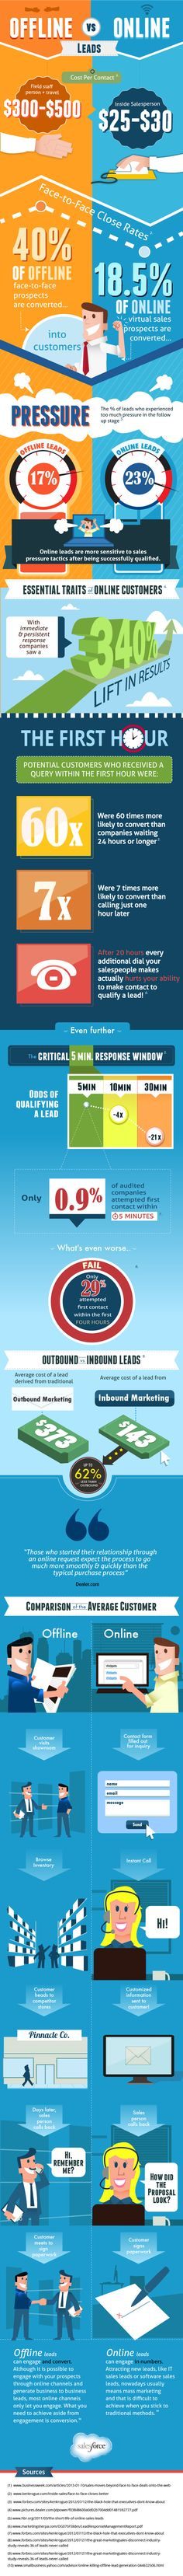 Offline leads vs online leads #infographic By www.riddsnetwork.in (SEO Expert Company India)